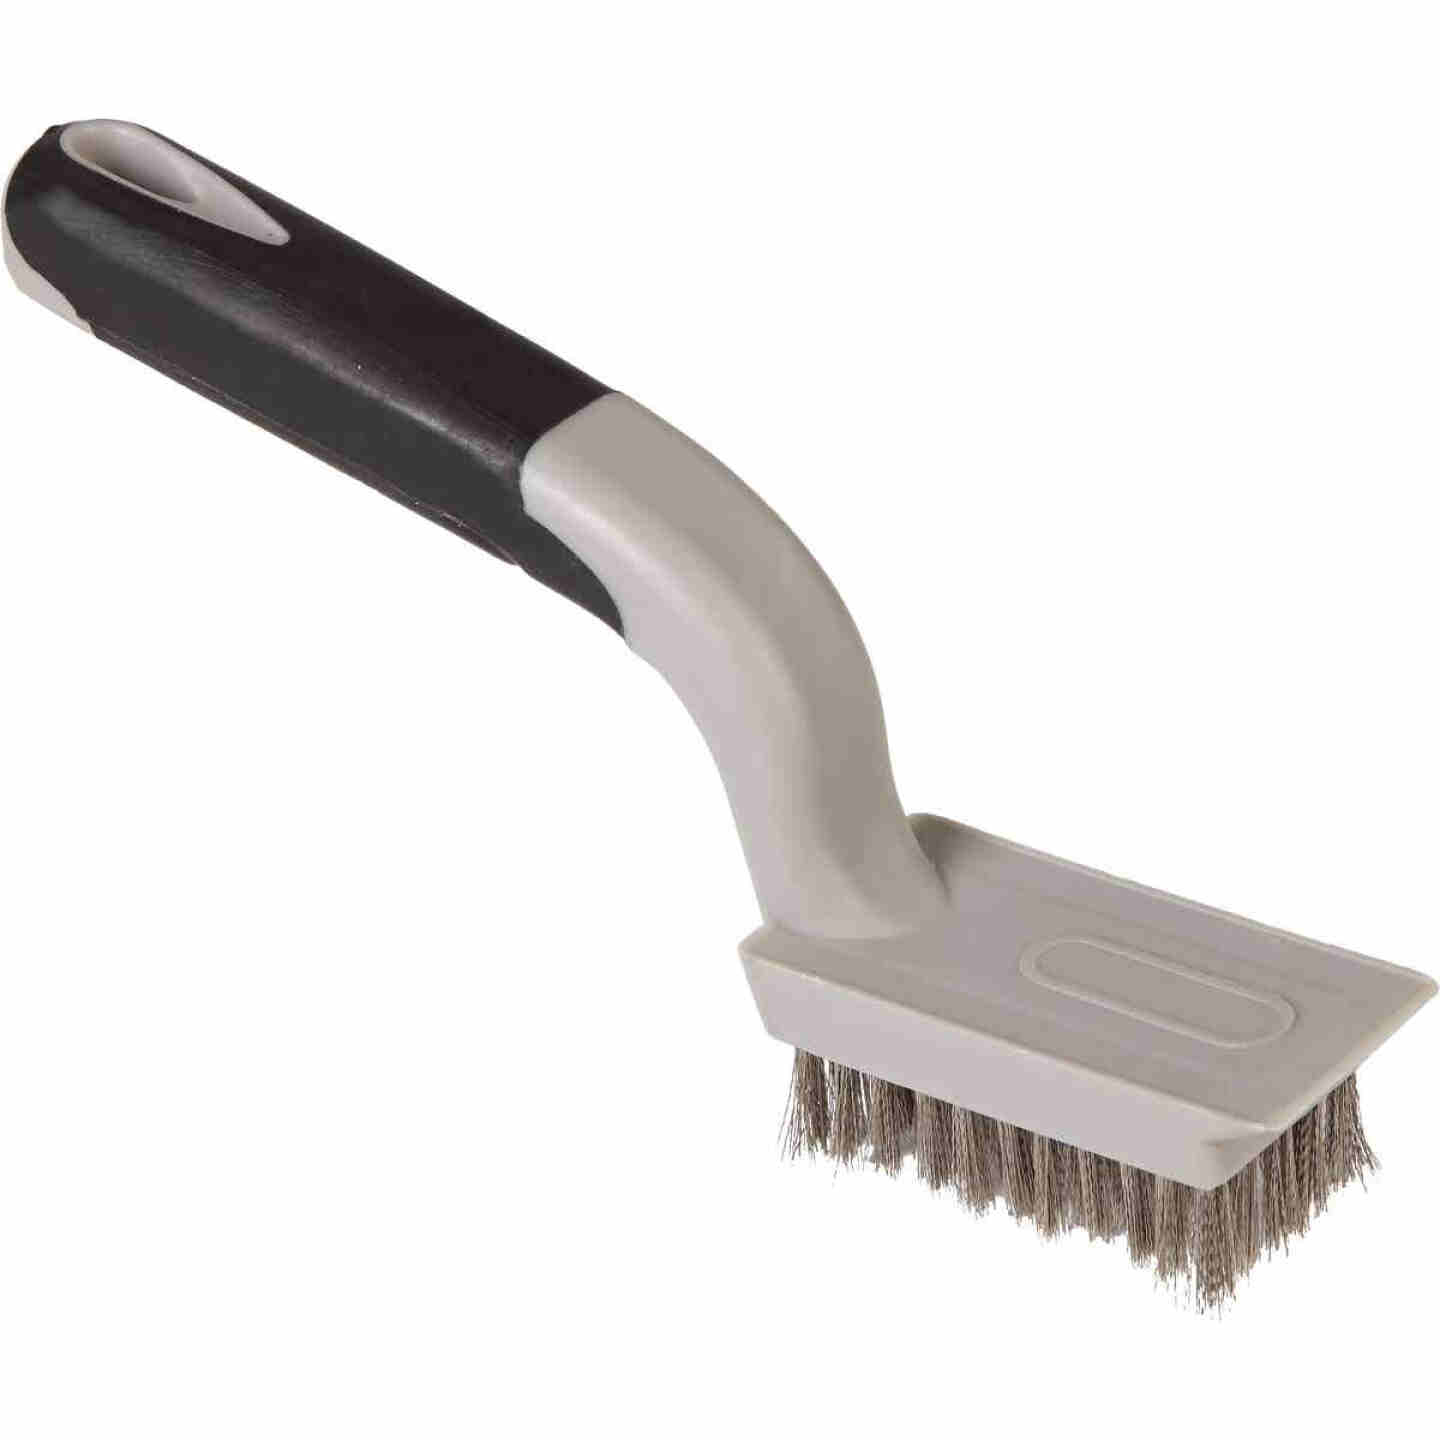 Best Look Stainless Steel Soft Grip Wire Brush Image 1